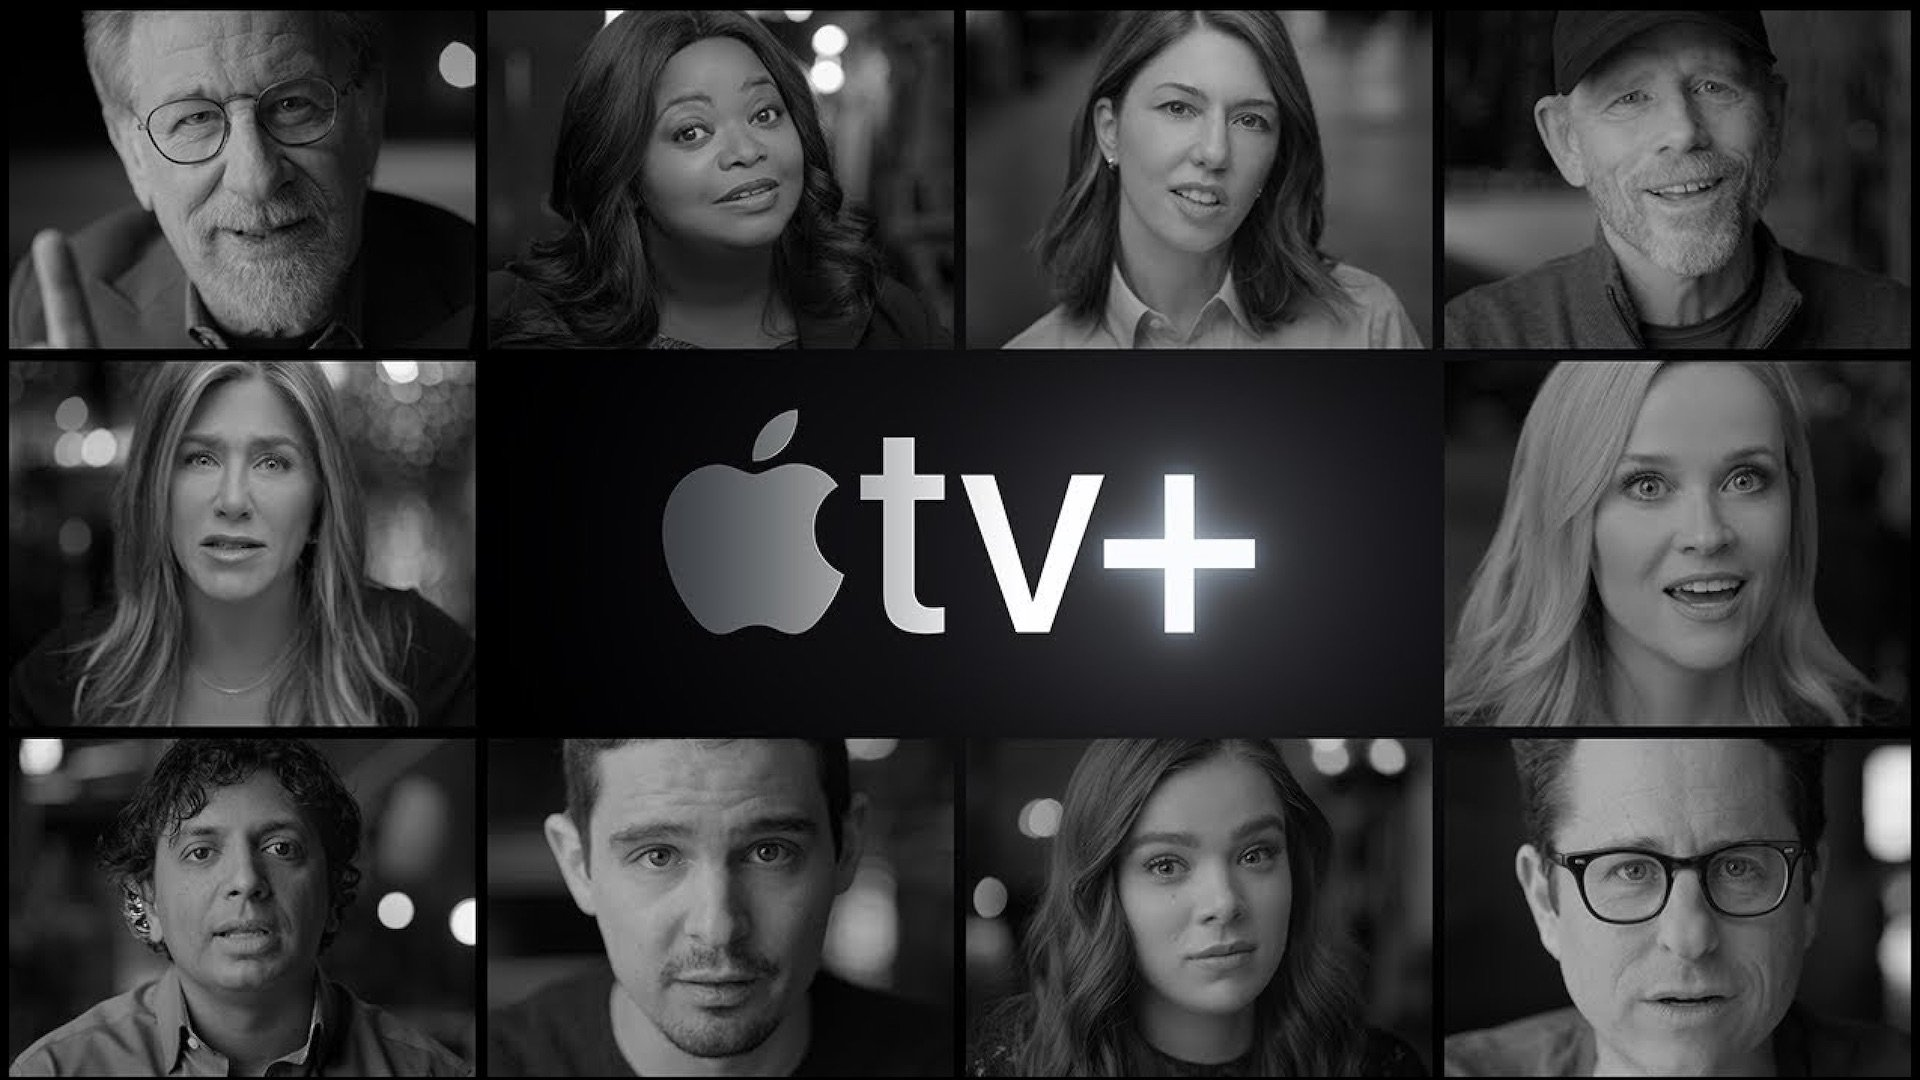 Arriva Apple TV+: film, serie tv e show originali targati Apple